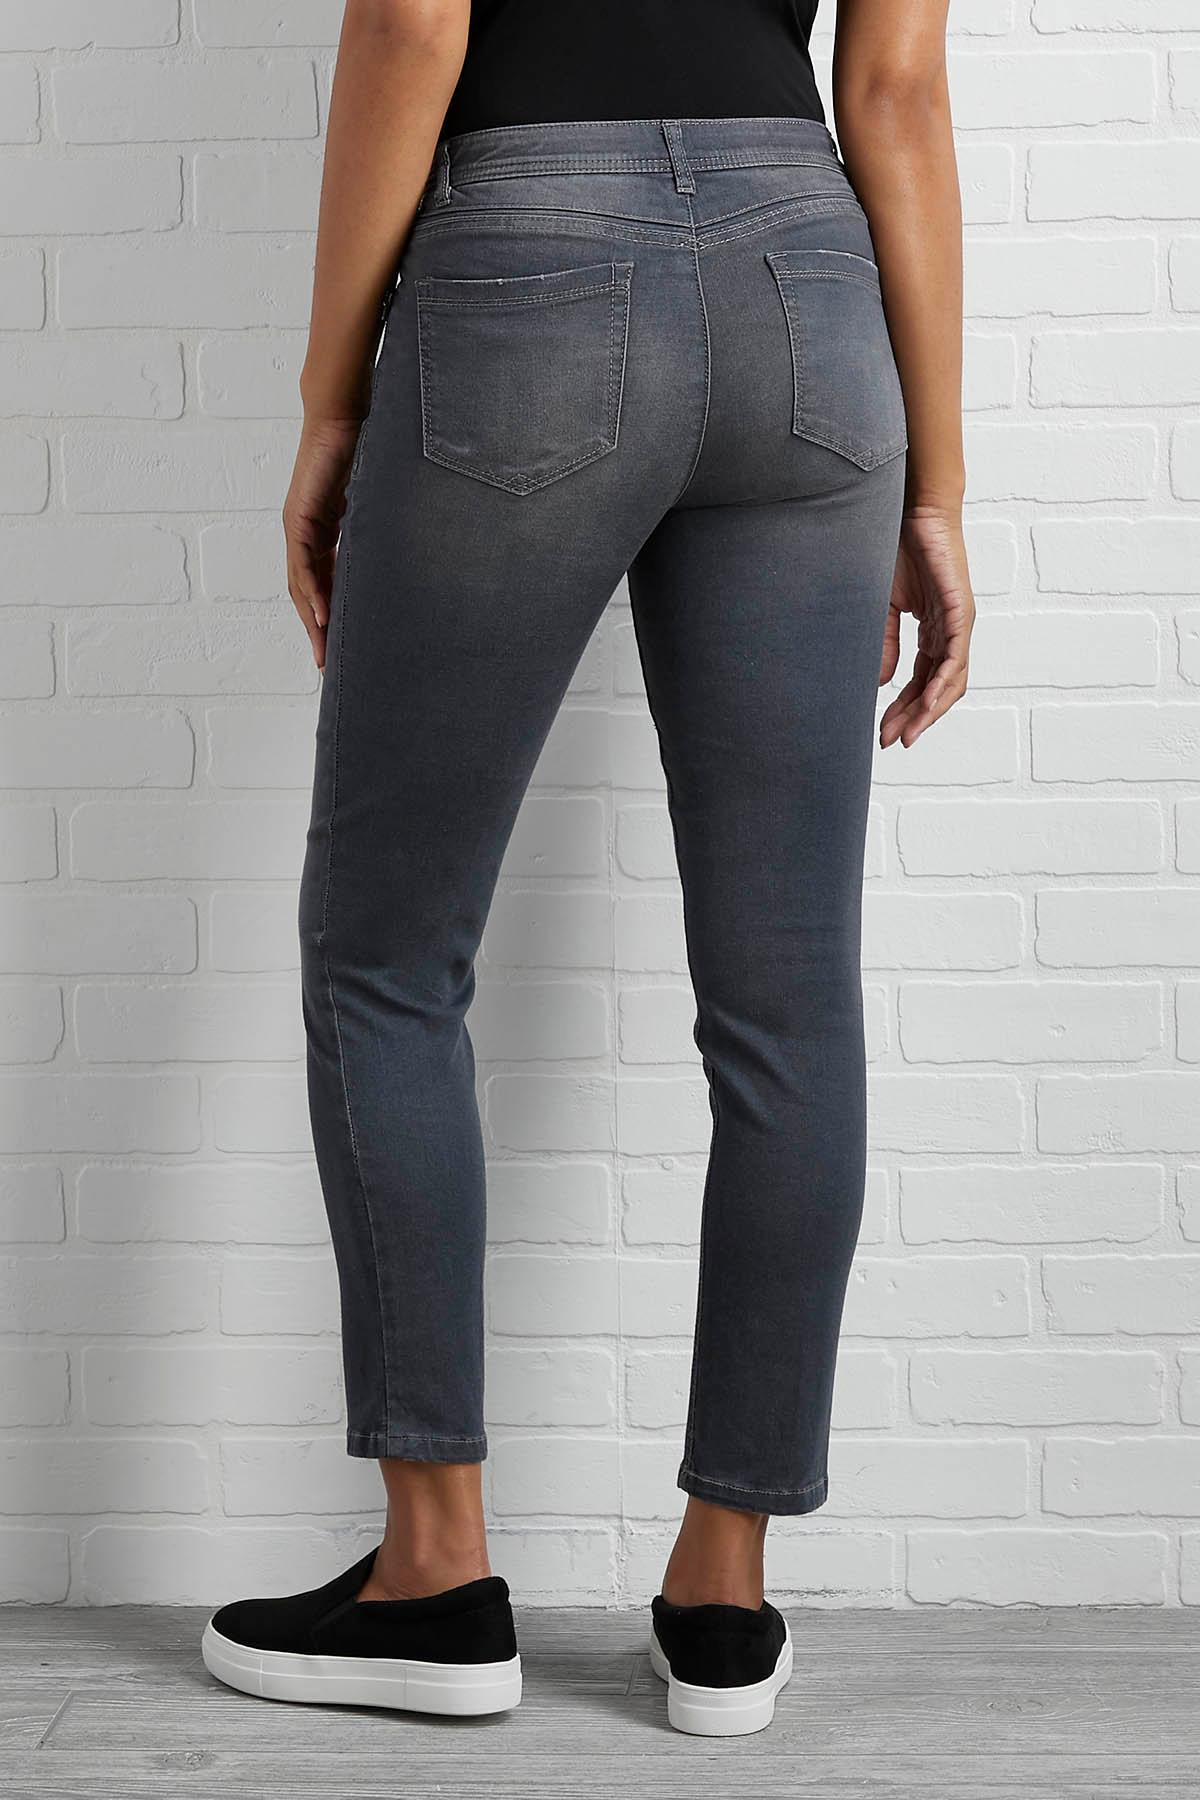 What's Your Zip Code Jeans